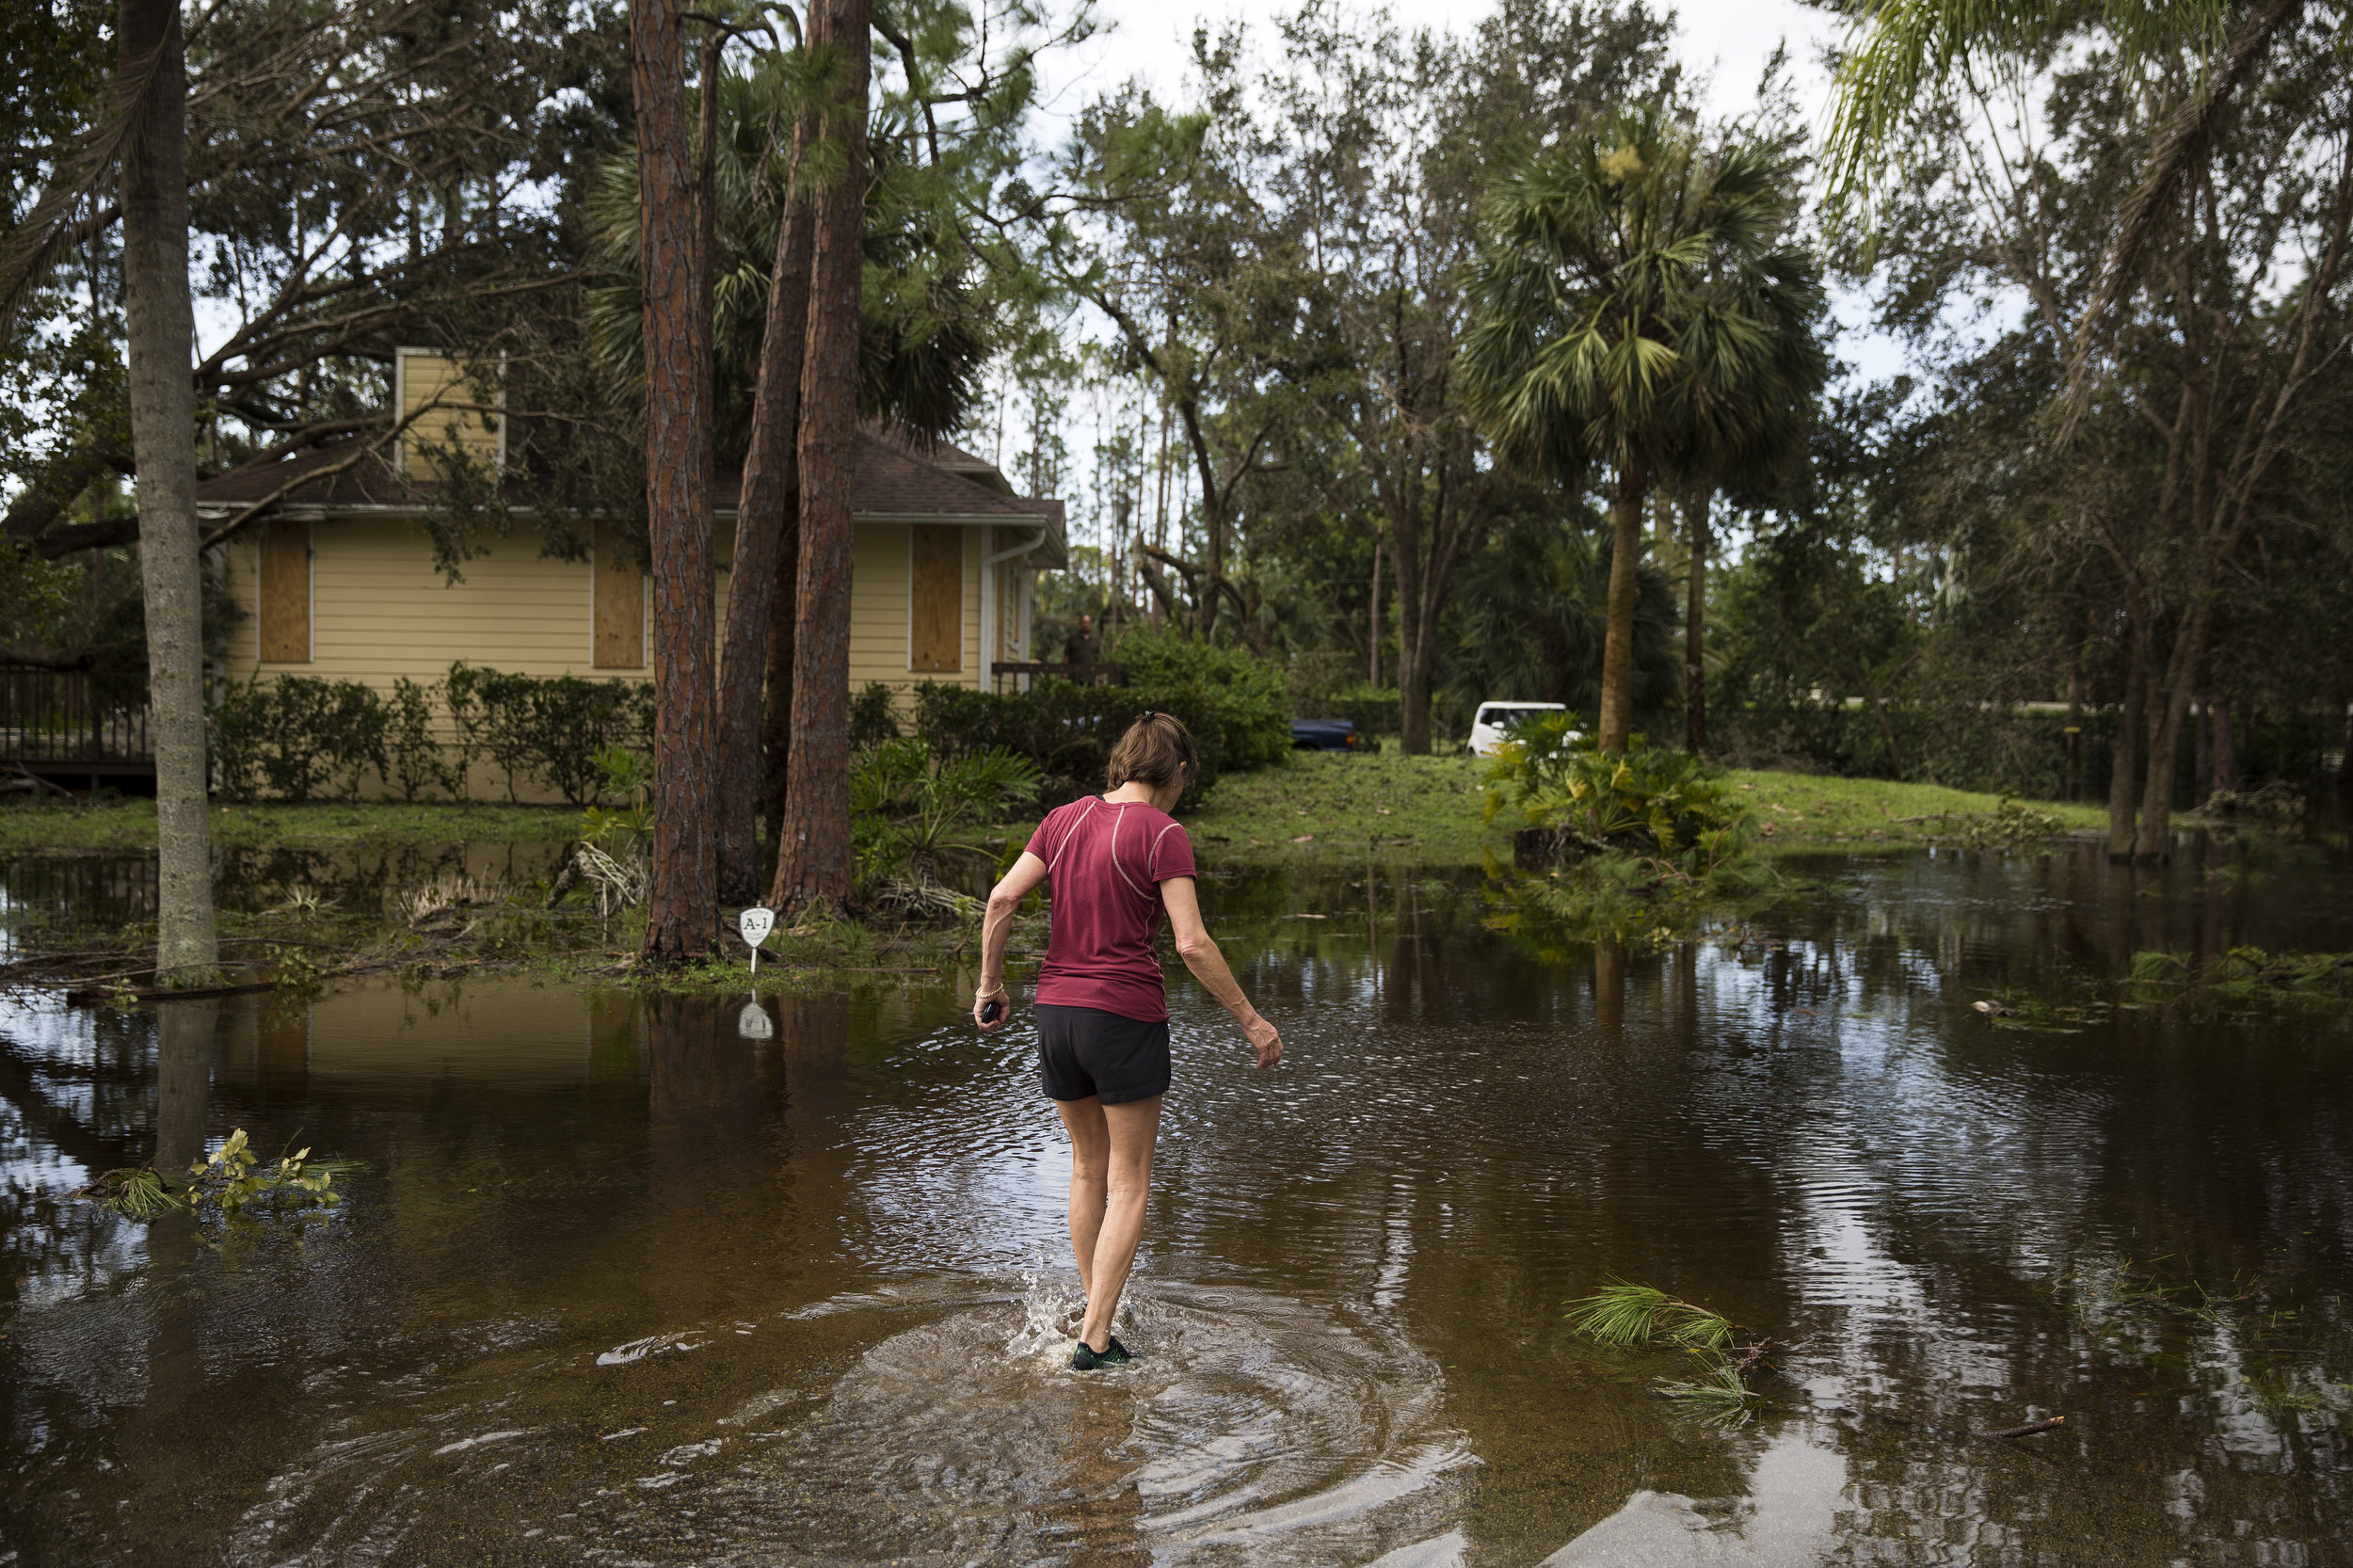 Barbara Rice steps through her flooded yard after assessing damage on her property caused by Hurricane Irma in North Naples on Monday, September 11, 2017.